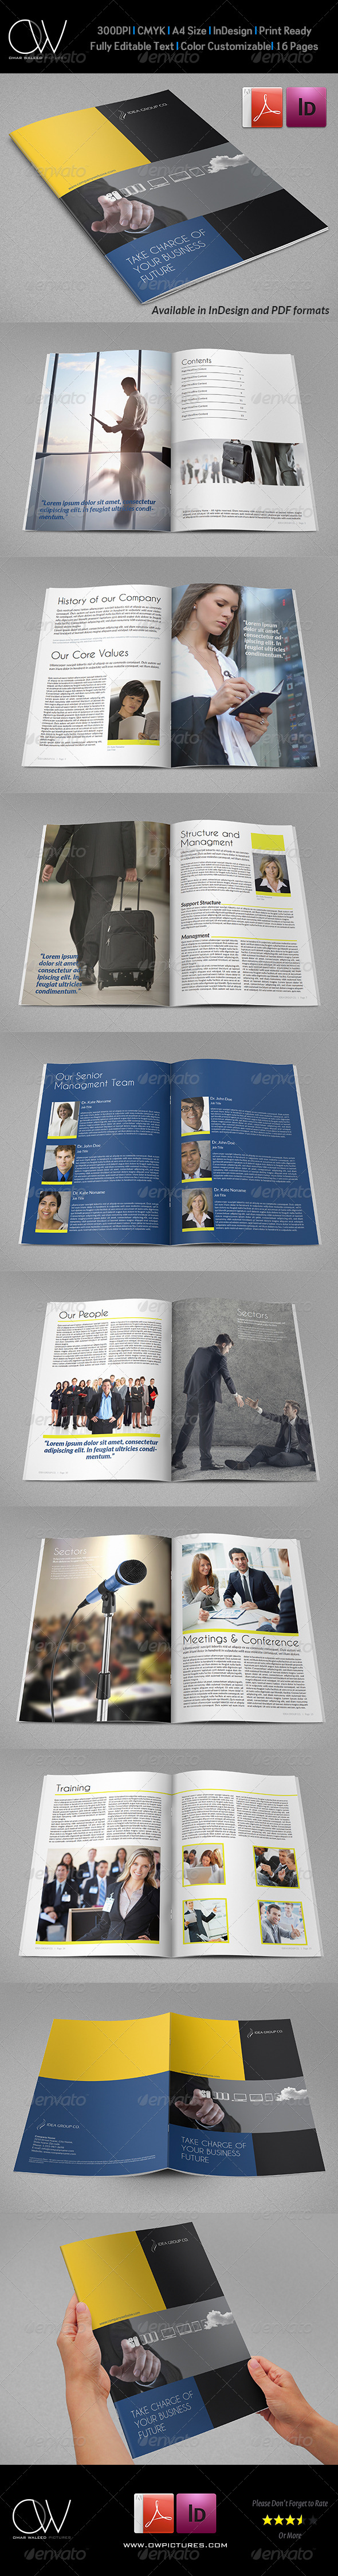 Corporate Brochure Template Vol.26 - 16 Pages - Corporate Brochures